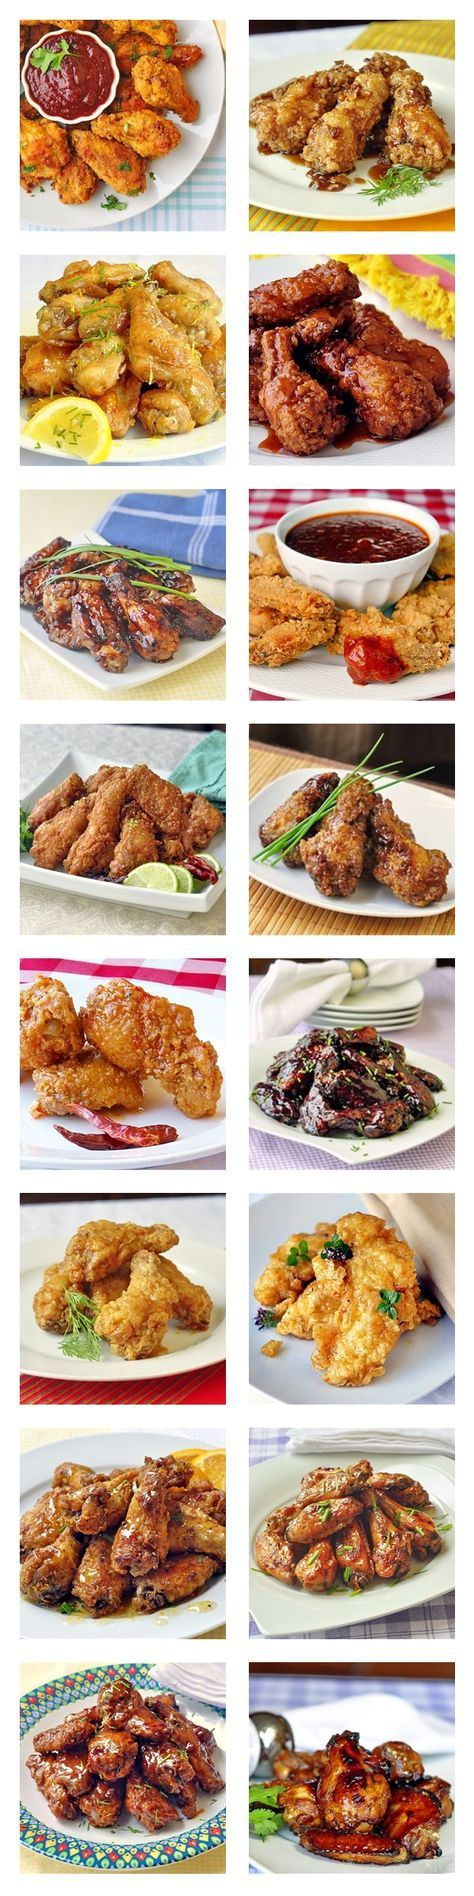 Need some wings to go with those St, Patricks Day pints? This collection includes some great ones from Chili Lime, Maple Chipotle and Crispy Honey BBQ to Honey Garlic, Southern fried with Orange Honey Drizzle and Brown Sugar and Dijon Glazed.